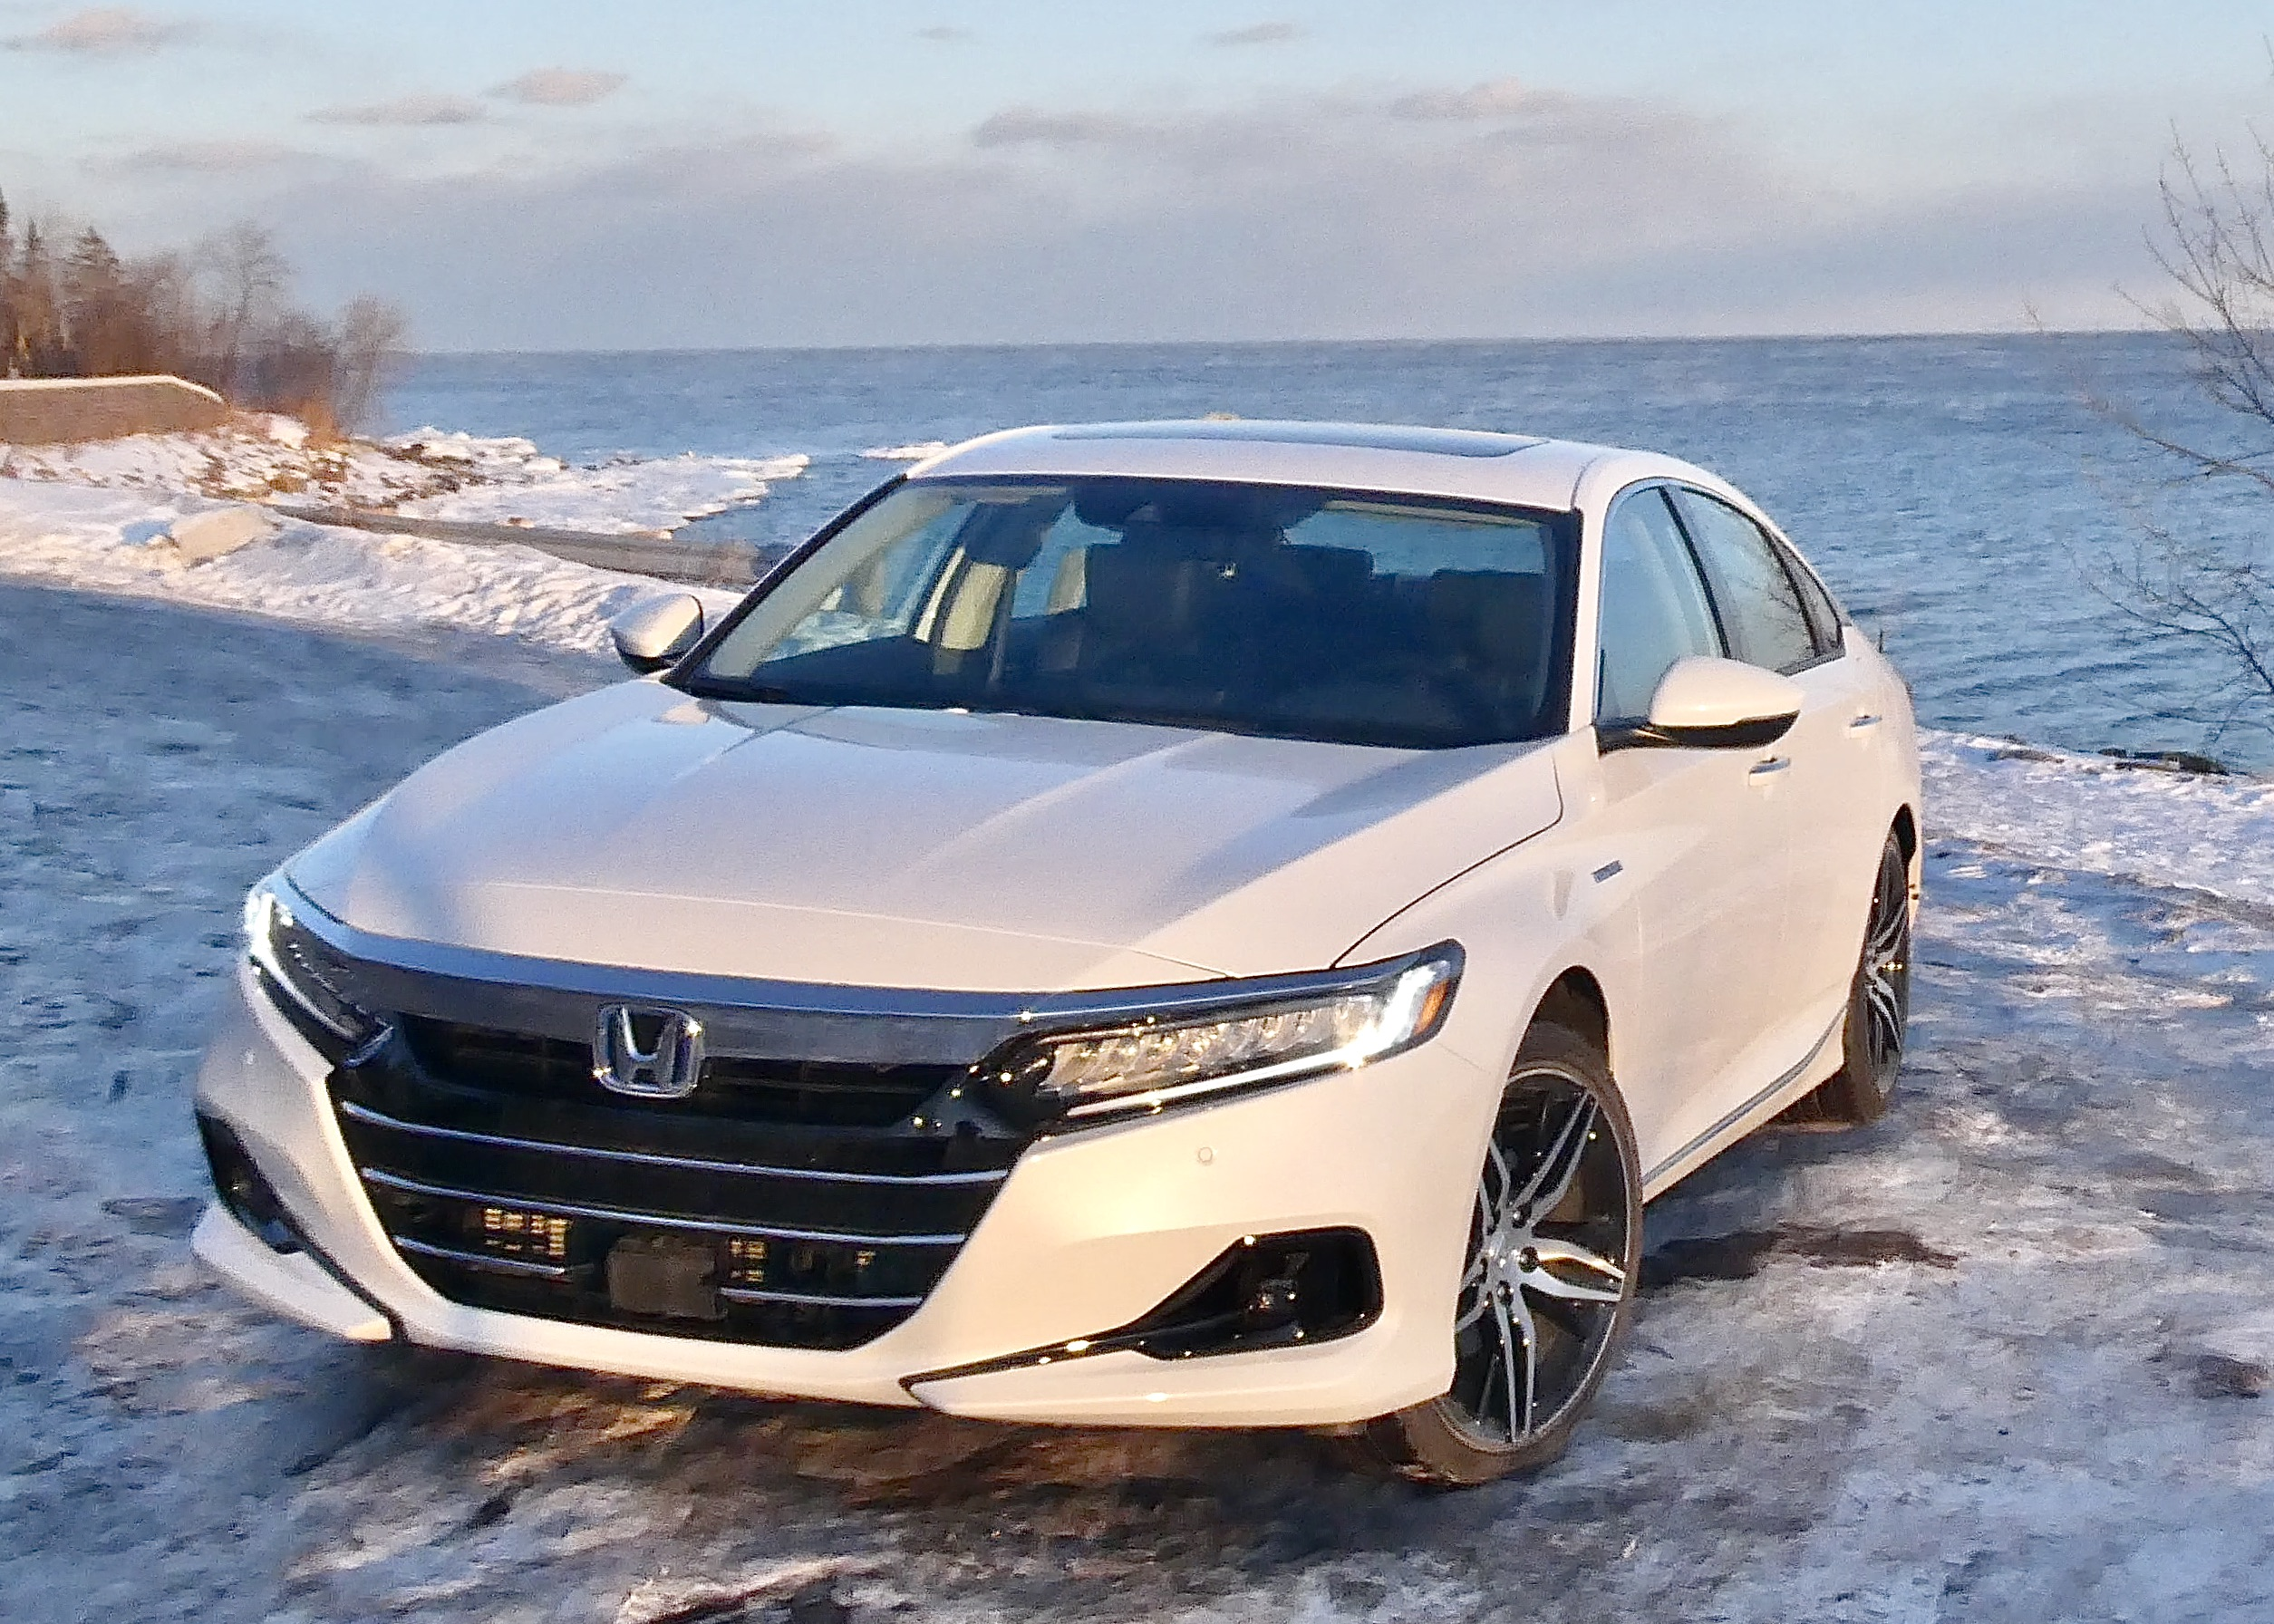 Smooth seams and striking design give the new Accord another annual upgrade in style.